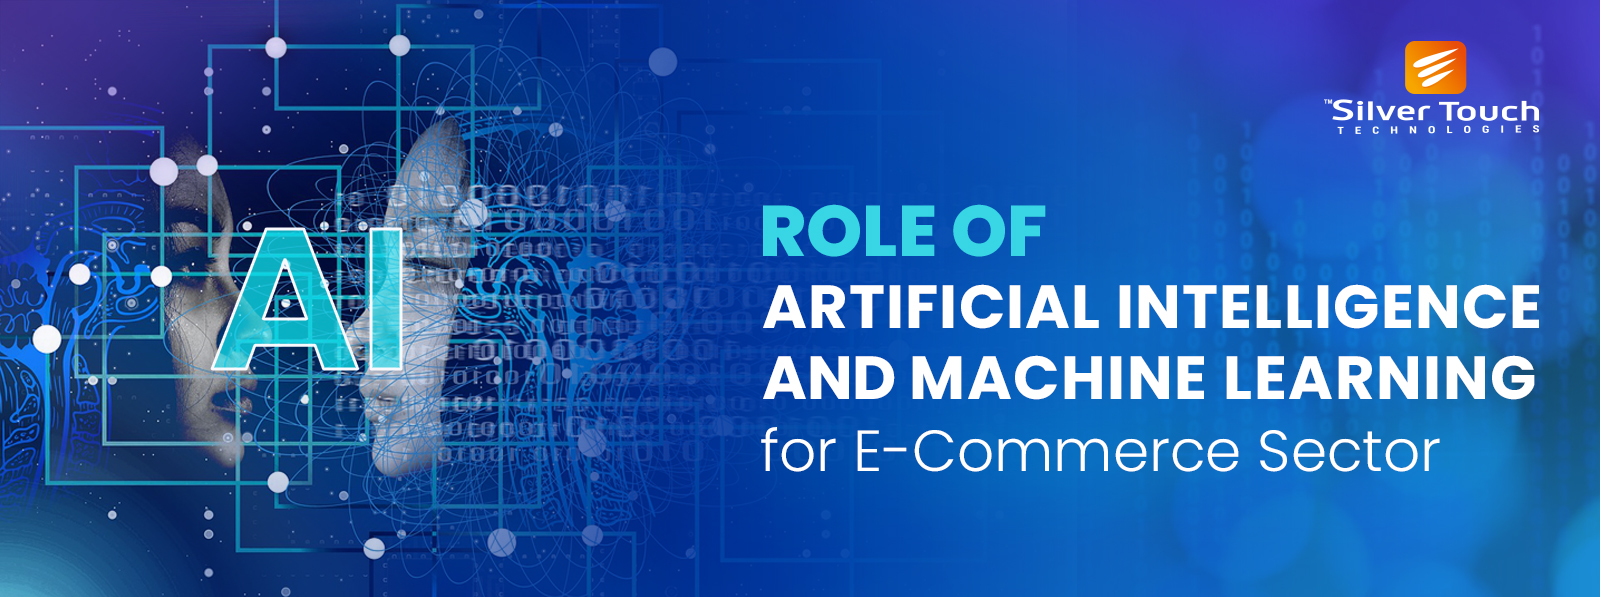 Role of Artificial Intelligence and Machine Learning for E-Commerce Sector